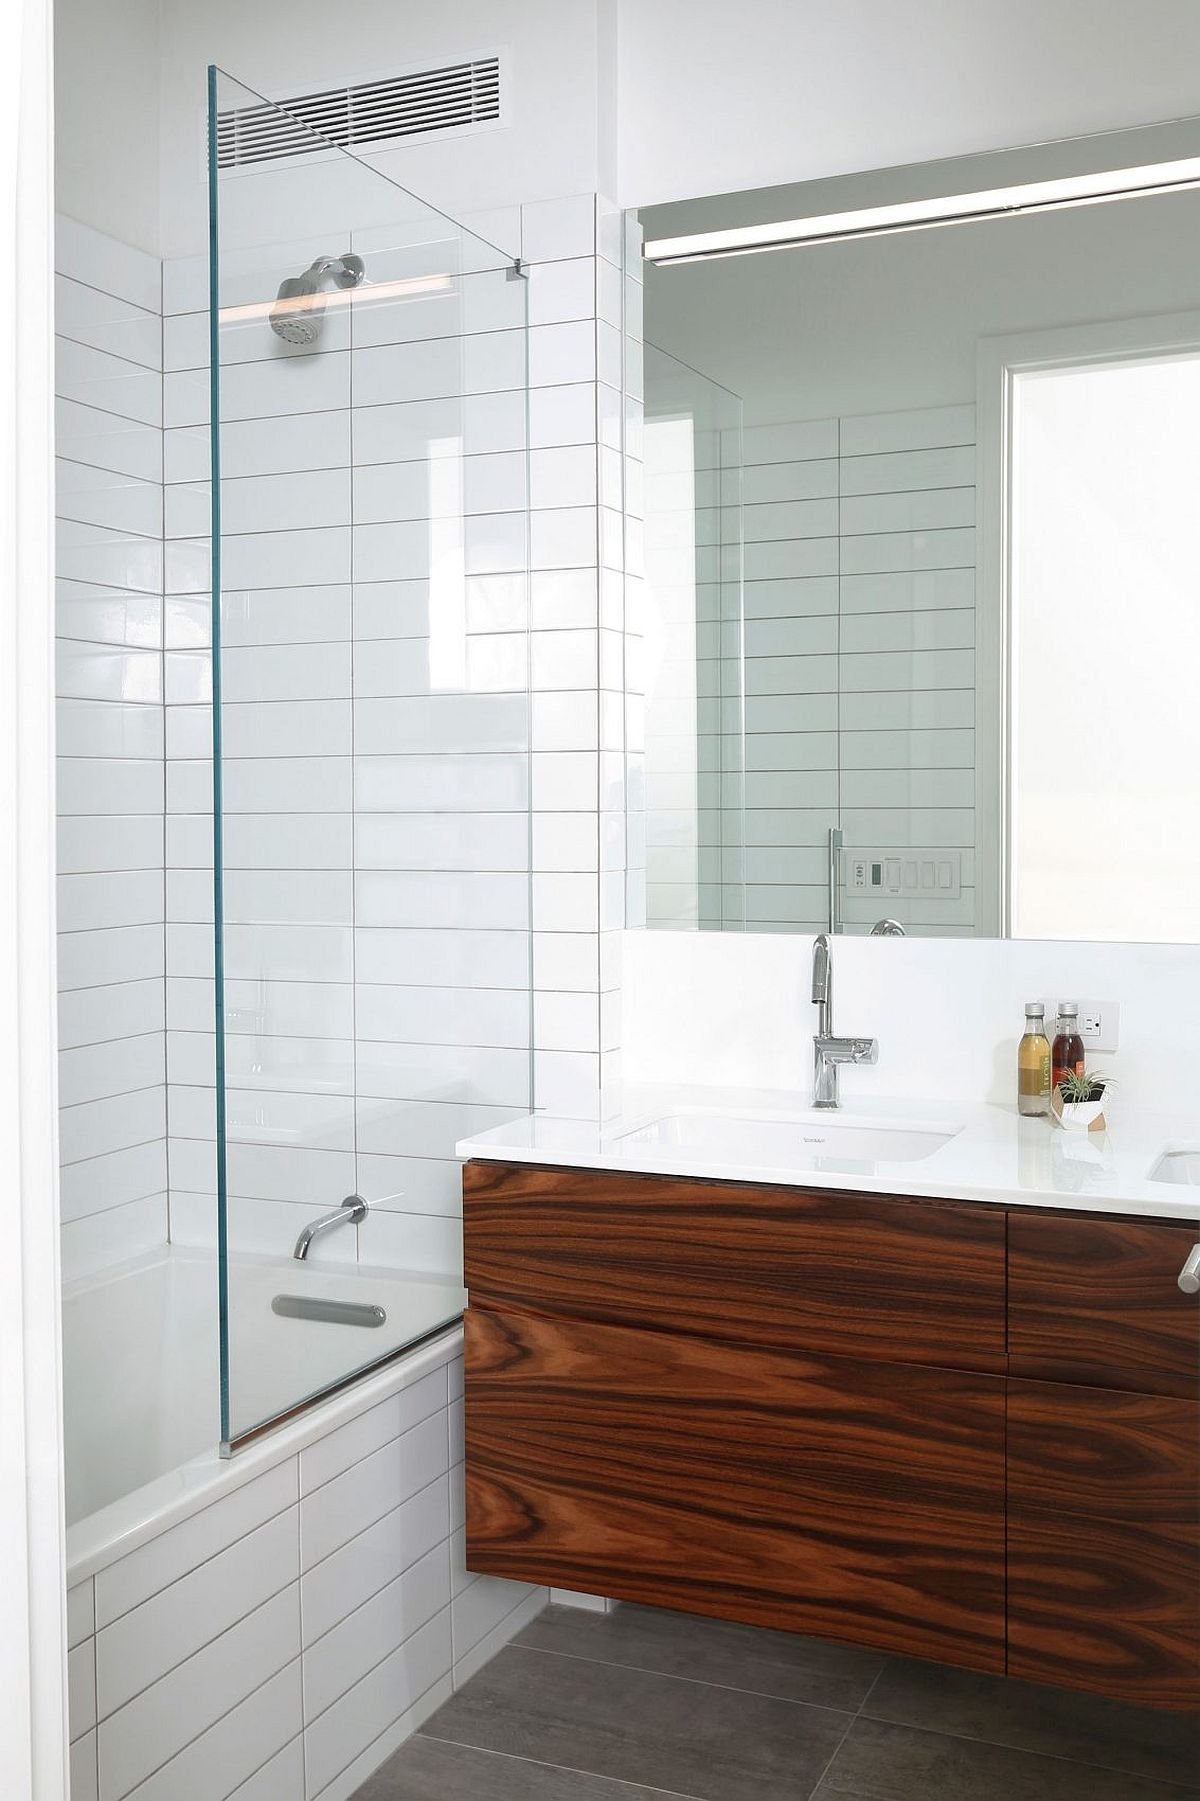 Floating wooden vanity with polished countertop in the bathroom